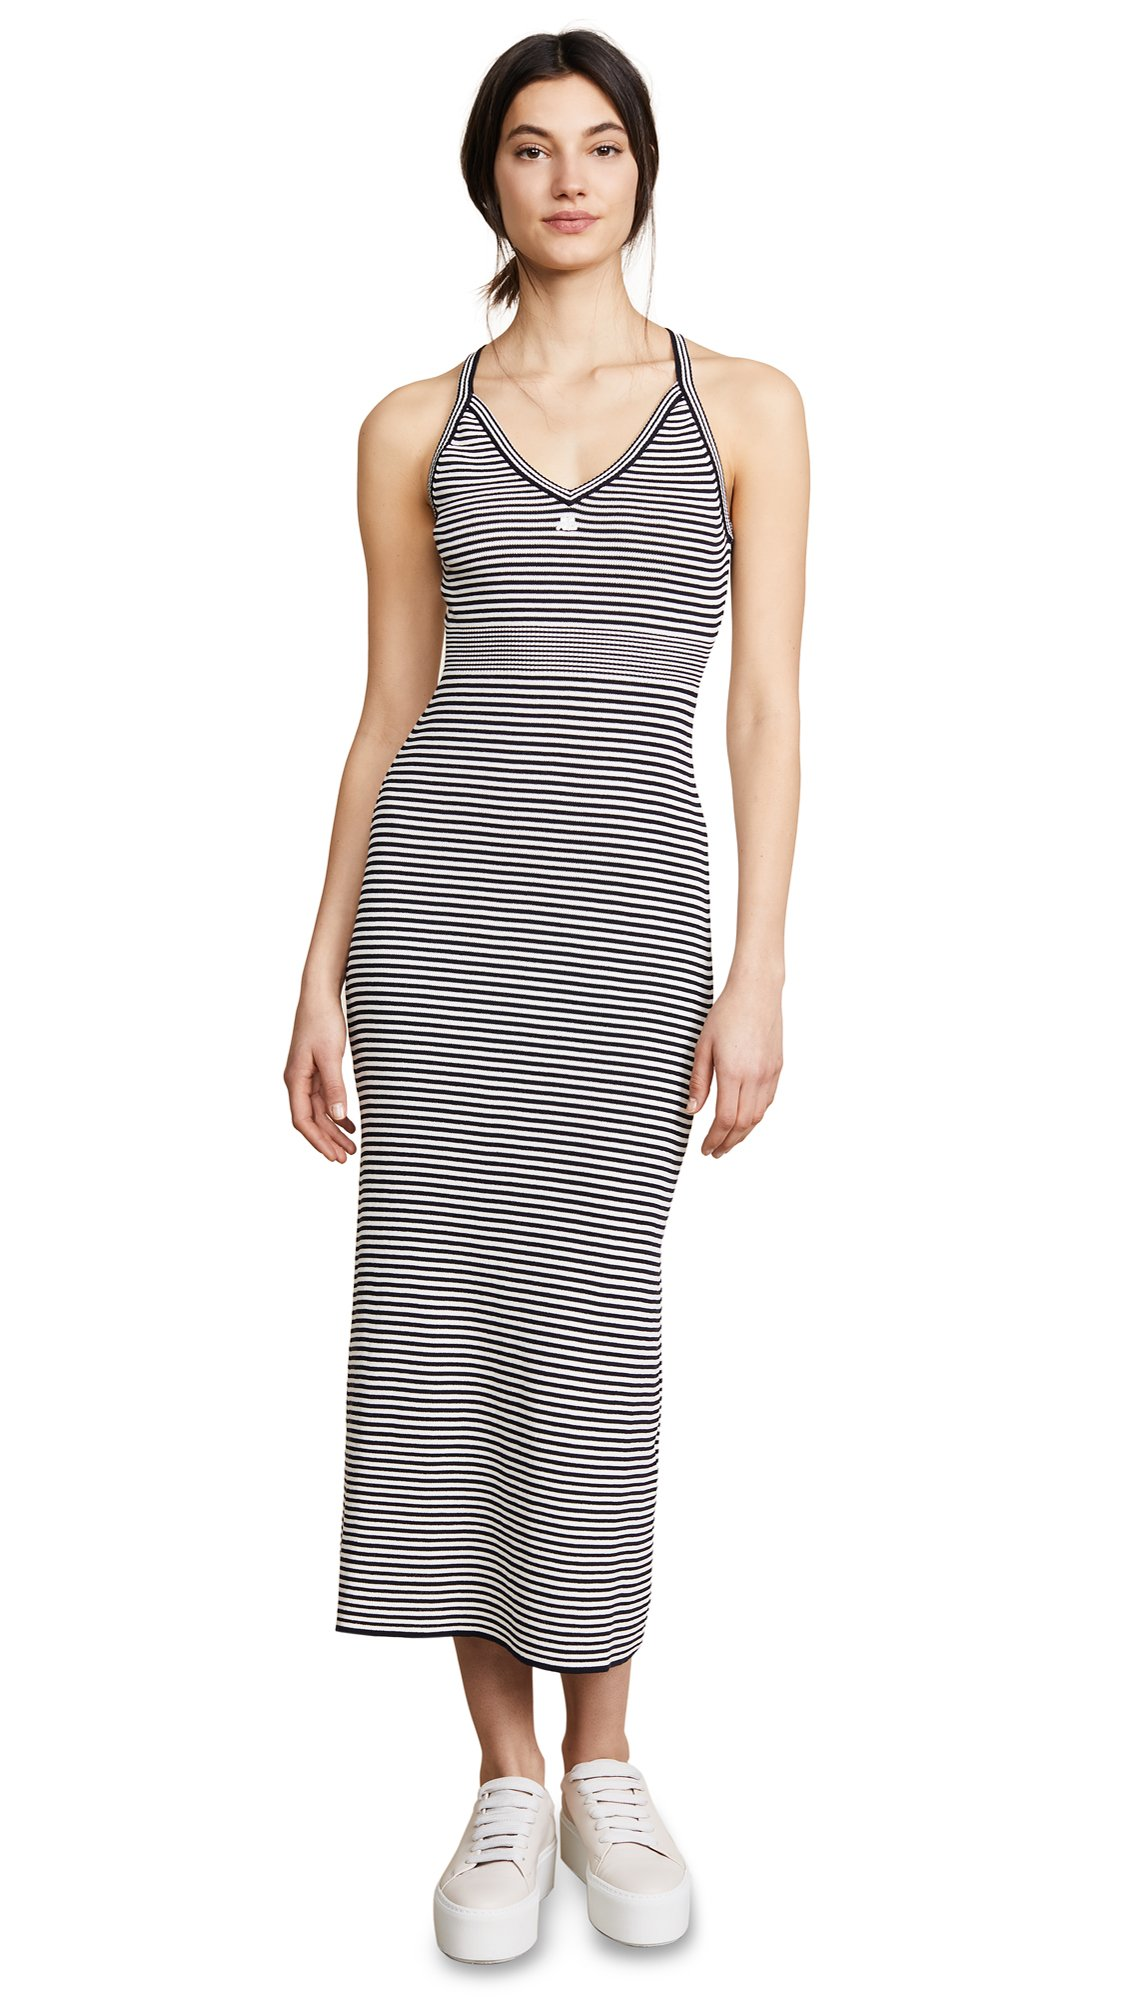 Courreges Women's Long Striped Metallic Dress, Navy/Ivory, 36